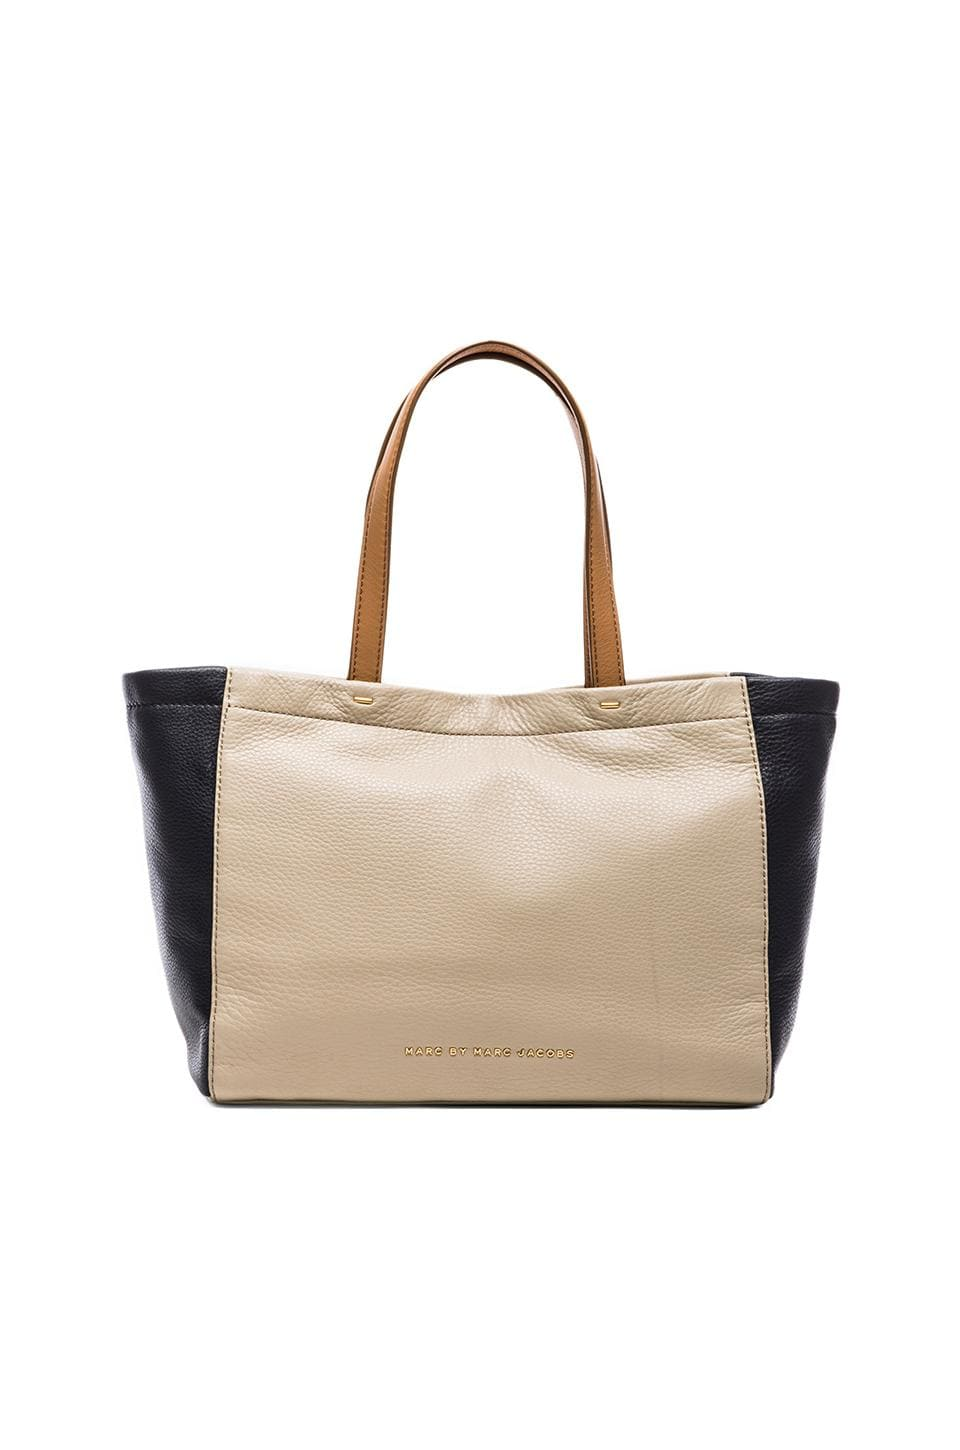 Marc by Marc Jacobs What's The T Tote in Sandstorm Multi